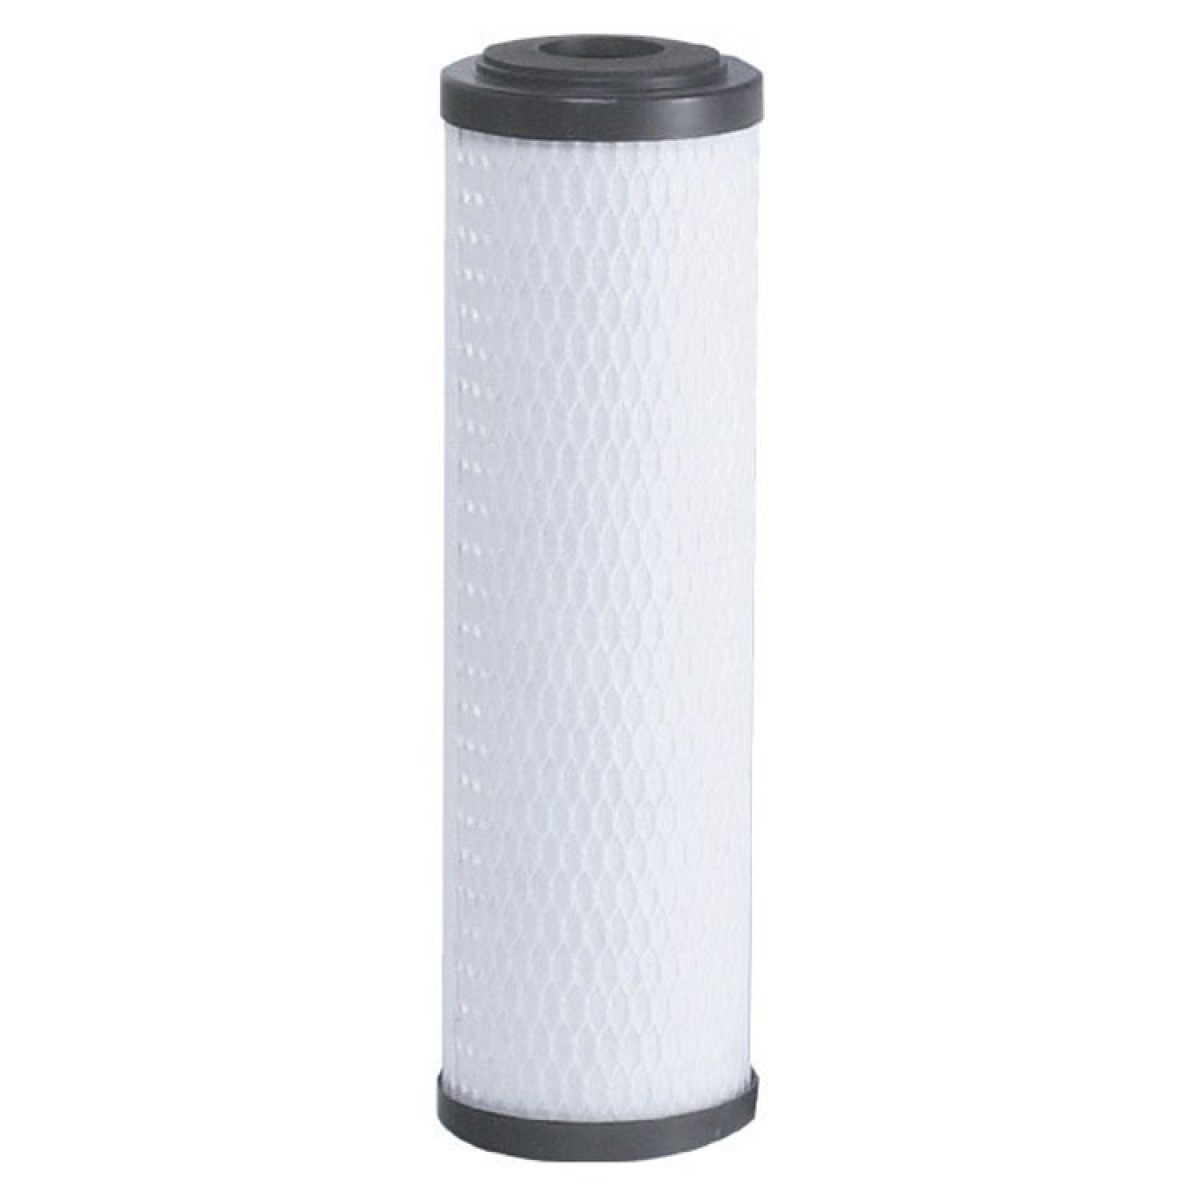 Watts Water Filter Replacement Watts Maxpb 975 C Max Replacement Filter Cartridge